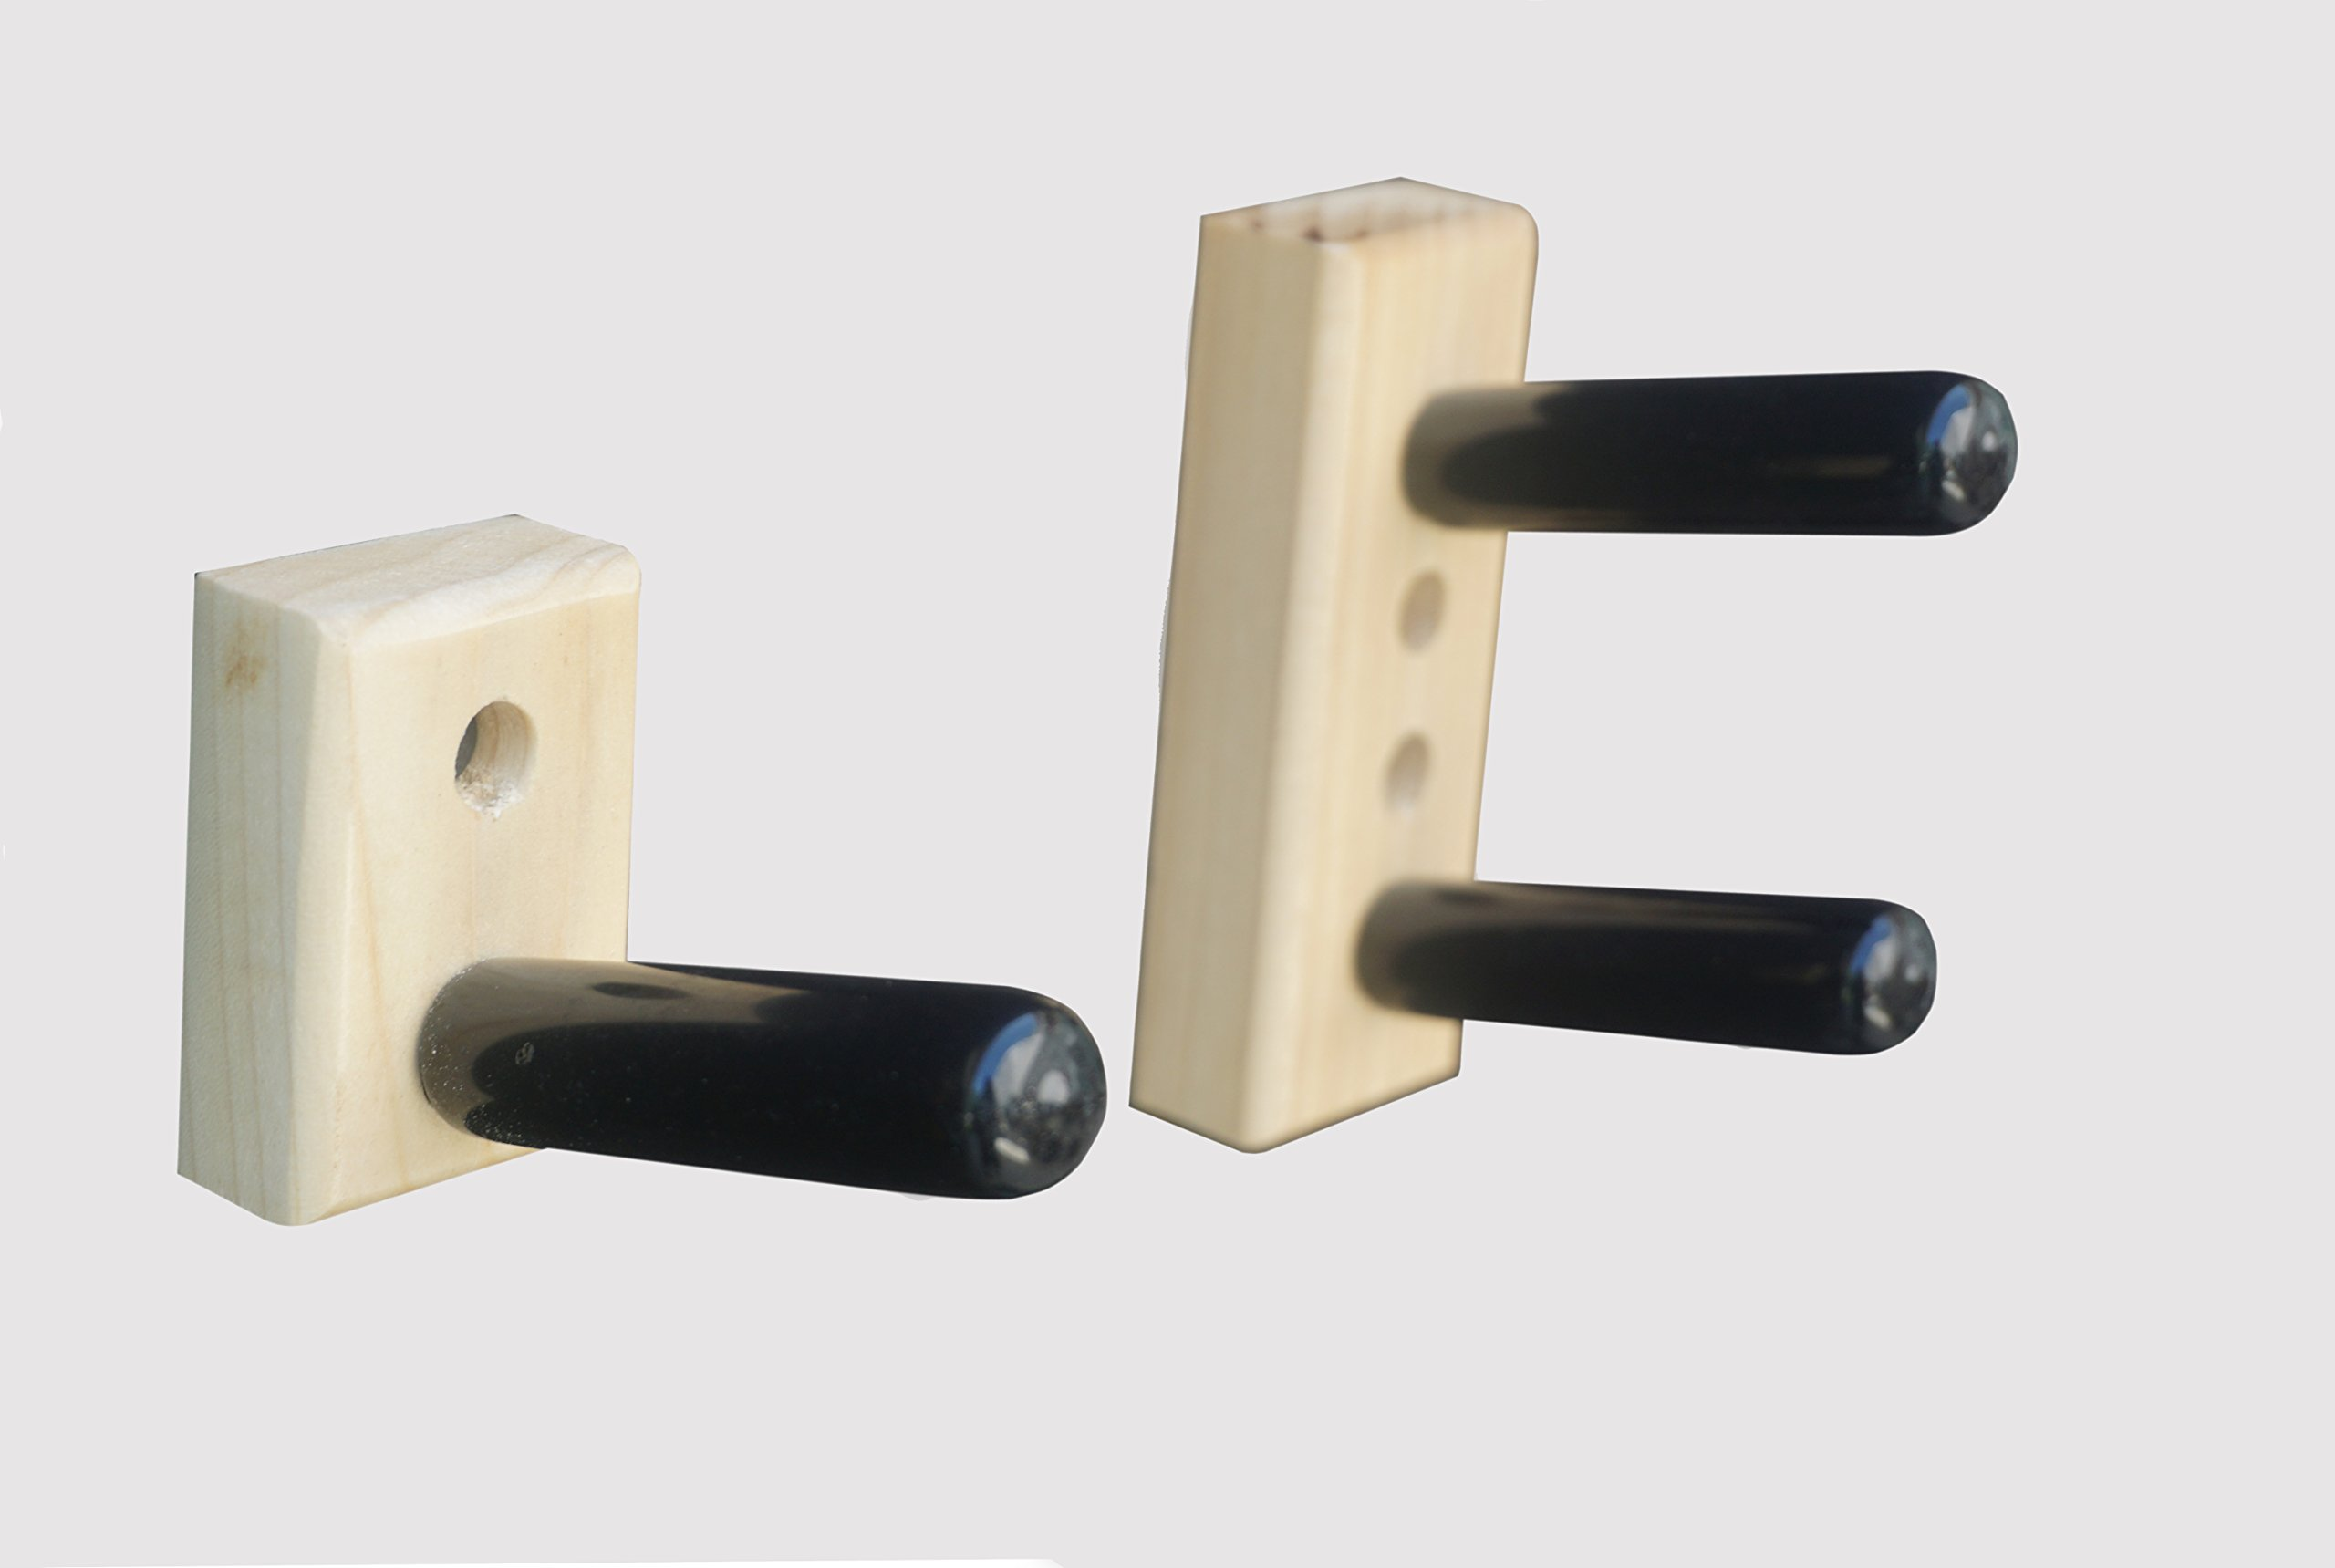 KR Ideas Standard Horizontal Wall Mount for an American Meiser Rifle (Made in the USA) (Poplar) by KR Ideas